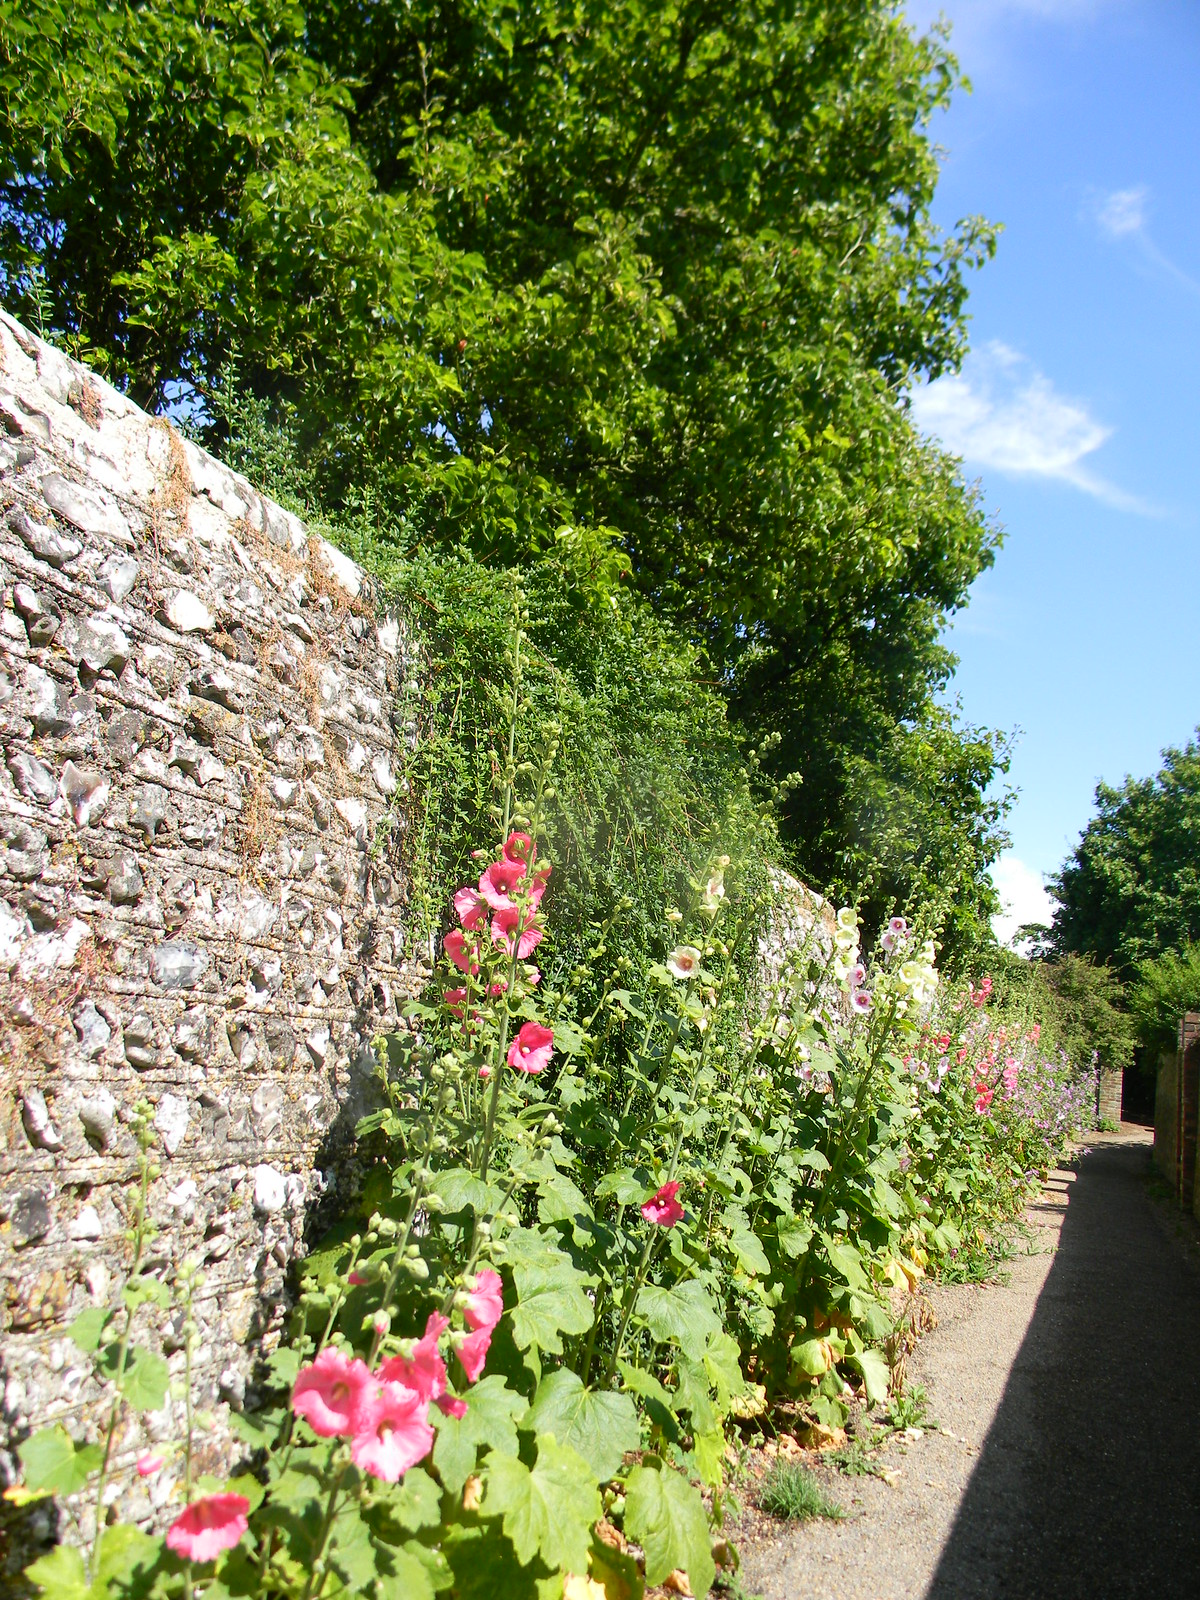 Hollyhocks West Firle Lewes to Berwick